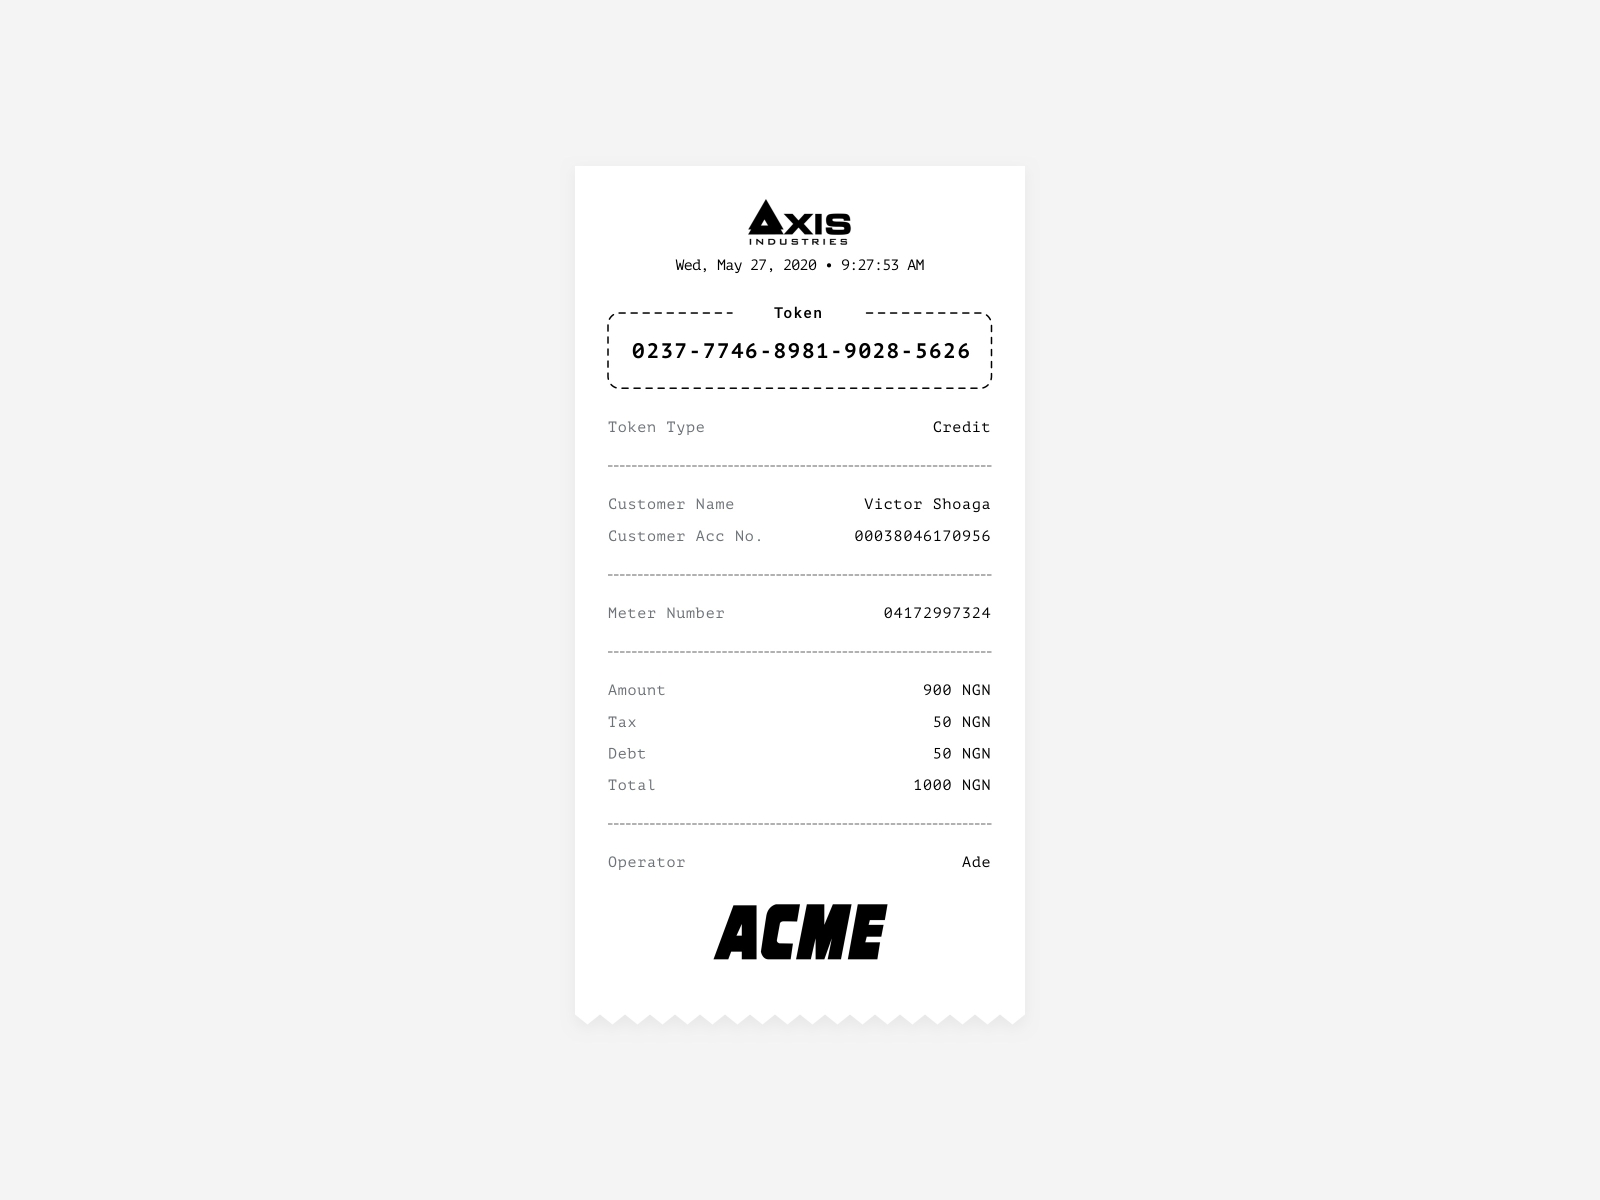 Receipt cover image